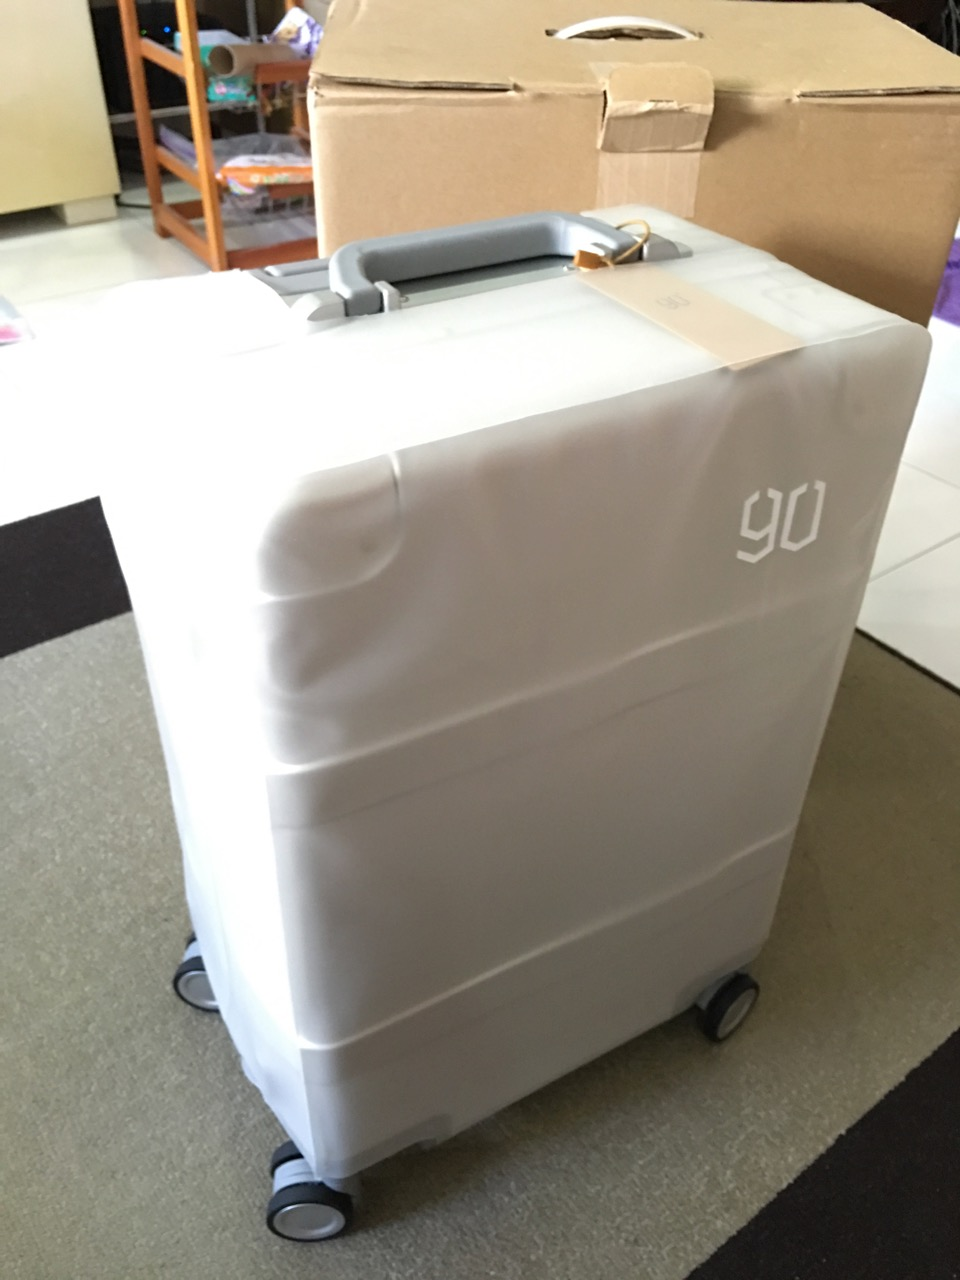 xiaomi-mi-90-smart-metal-luggage-suitcase-with-luggage-protector-on